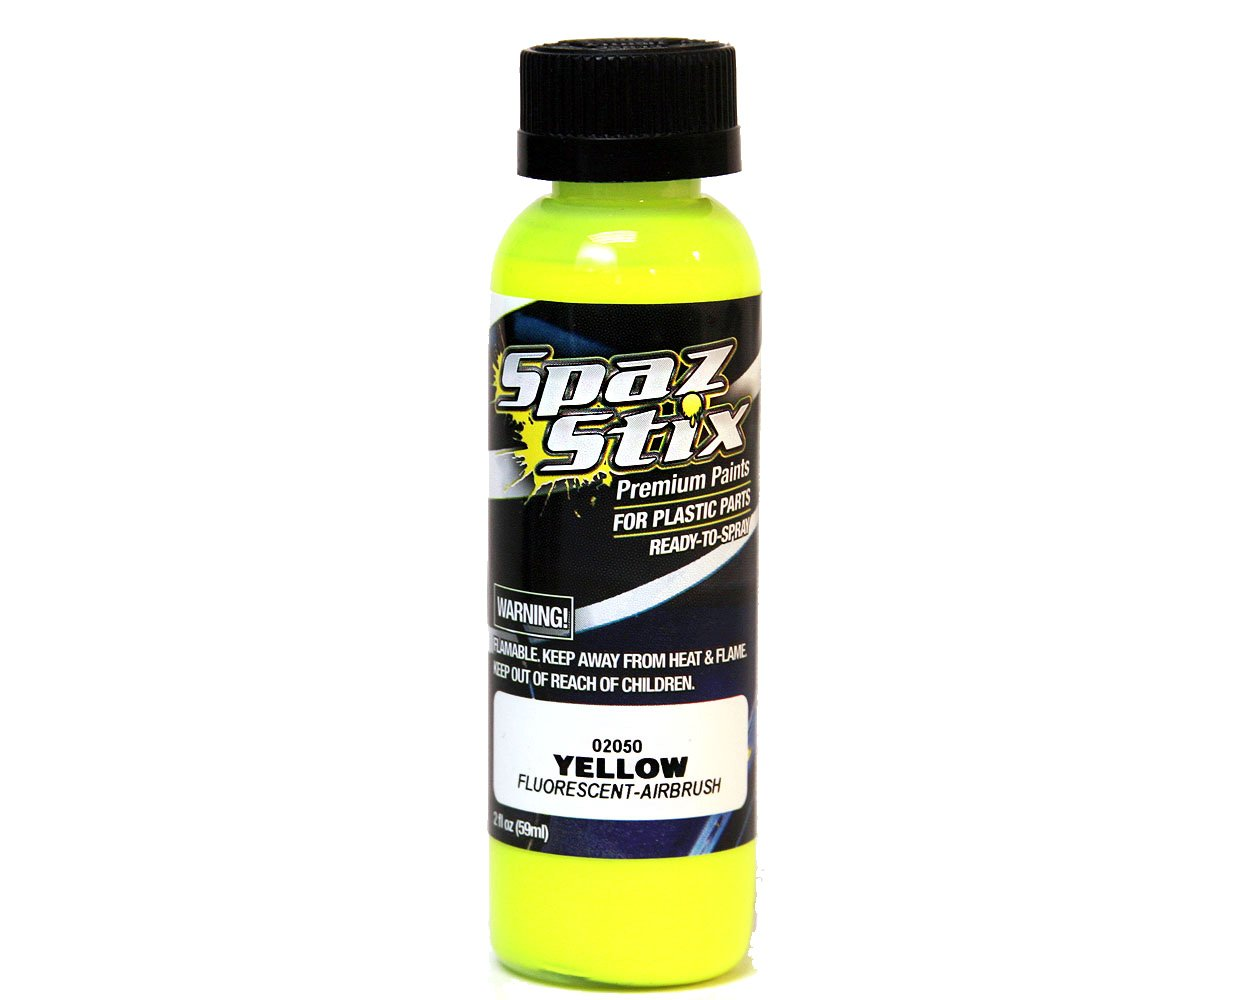 SpazStix Yellow Fluorescent Airbrush